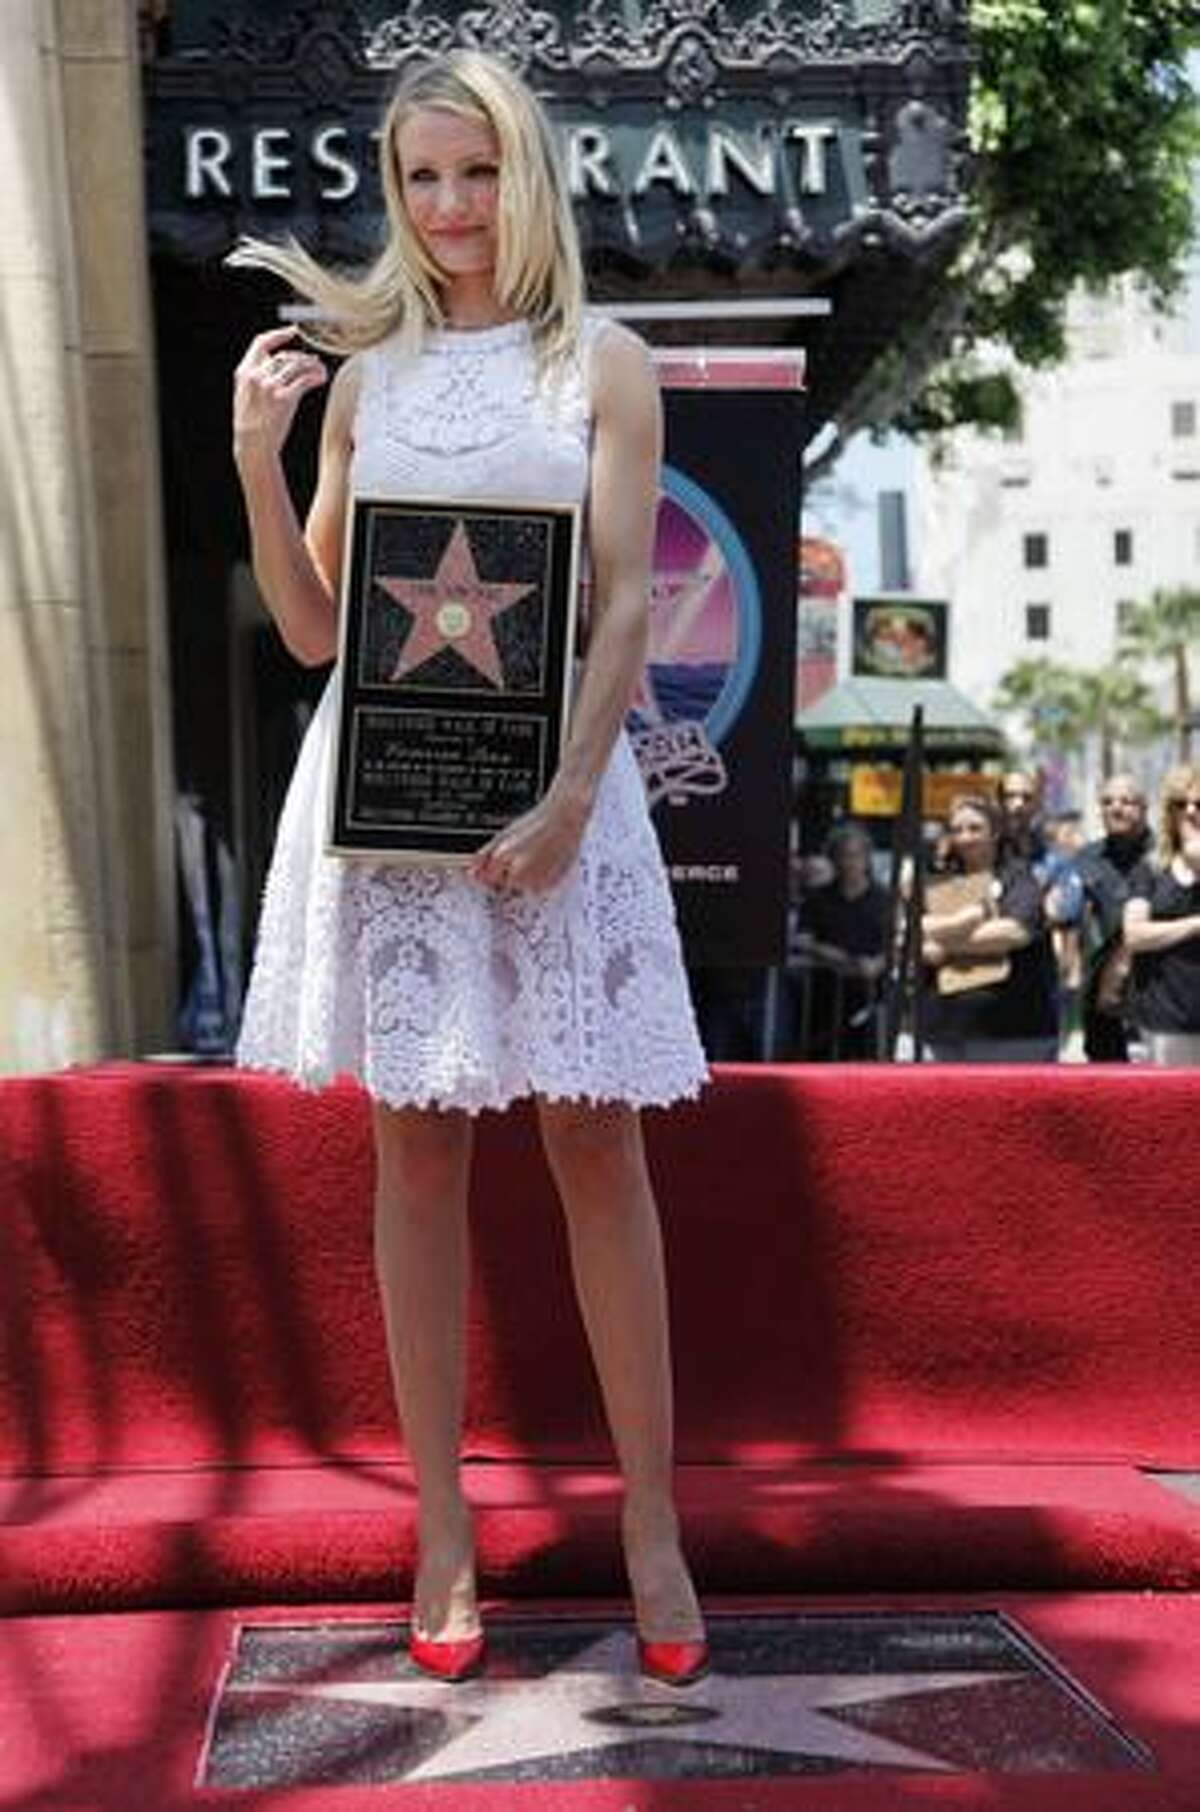 Actress Cameron Diaz poses during a ceremony honoring her with a star on the Hollywood Walk of Fame Monday in Los Angeles, four days before the premiere of her latest film,